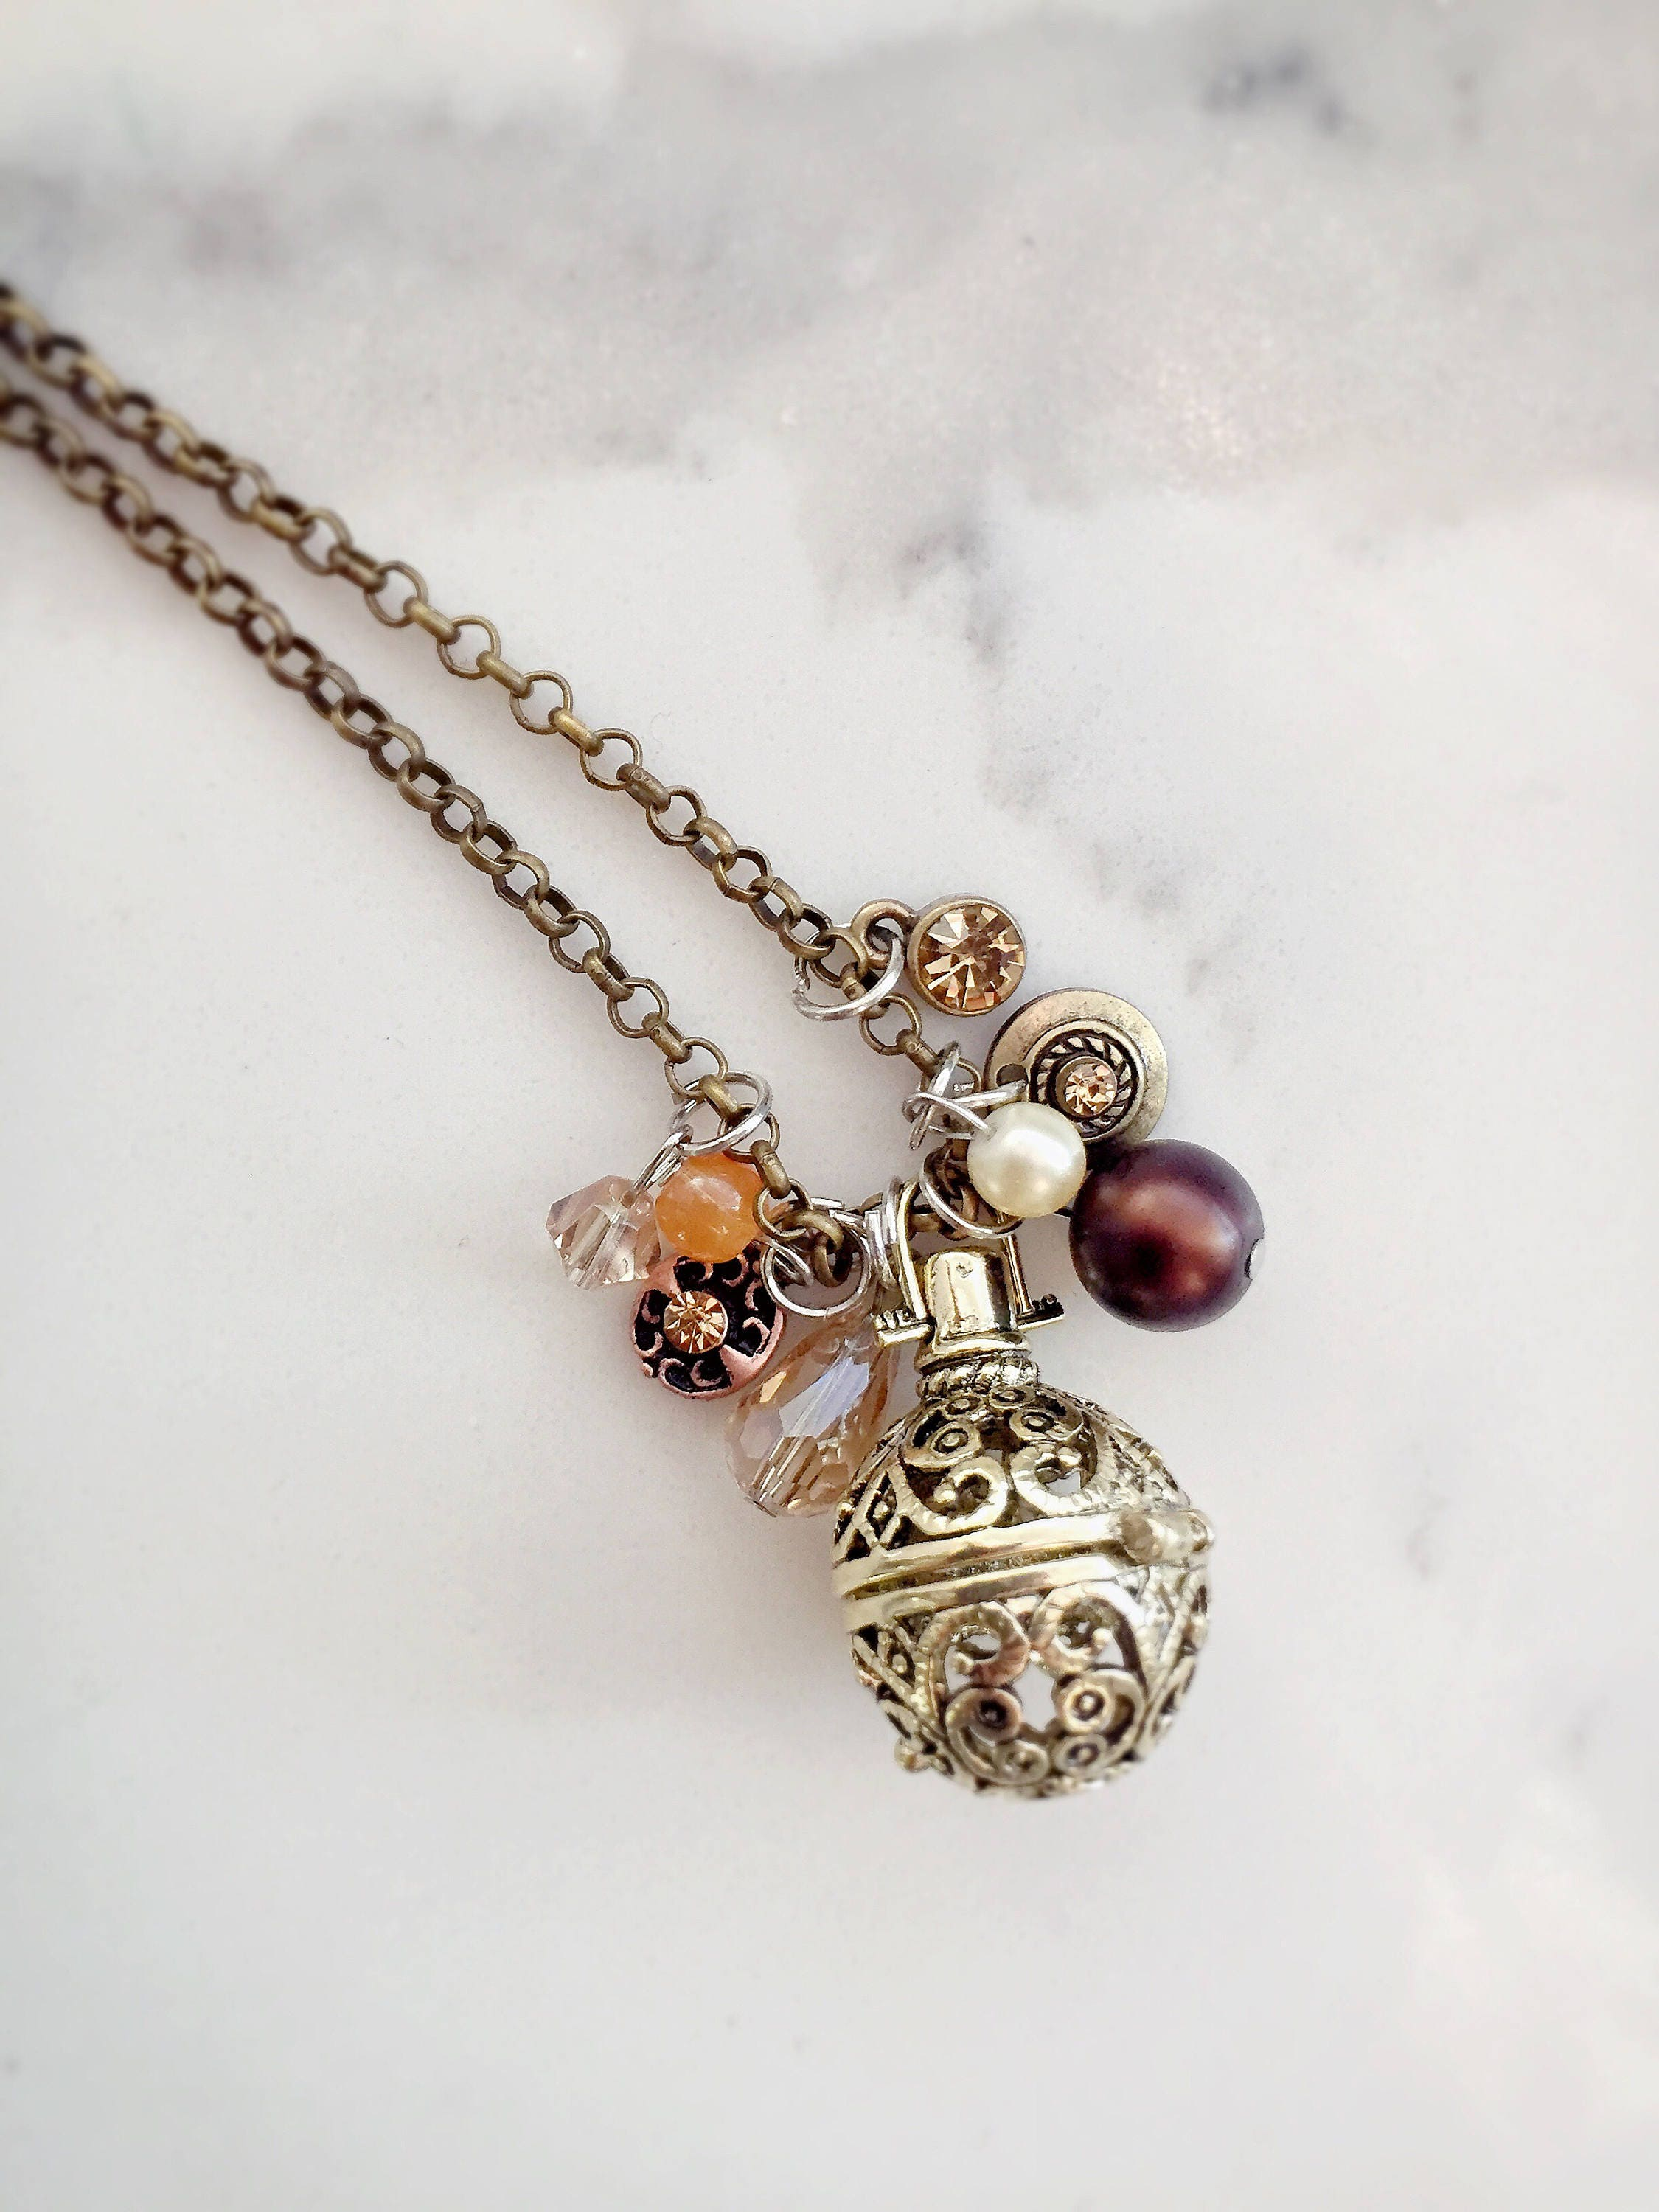 expand bohemian clover rhapsody shop antique locket oil necklace necklaces essential jewellery